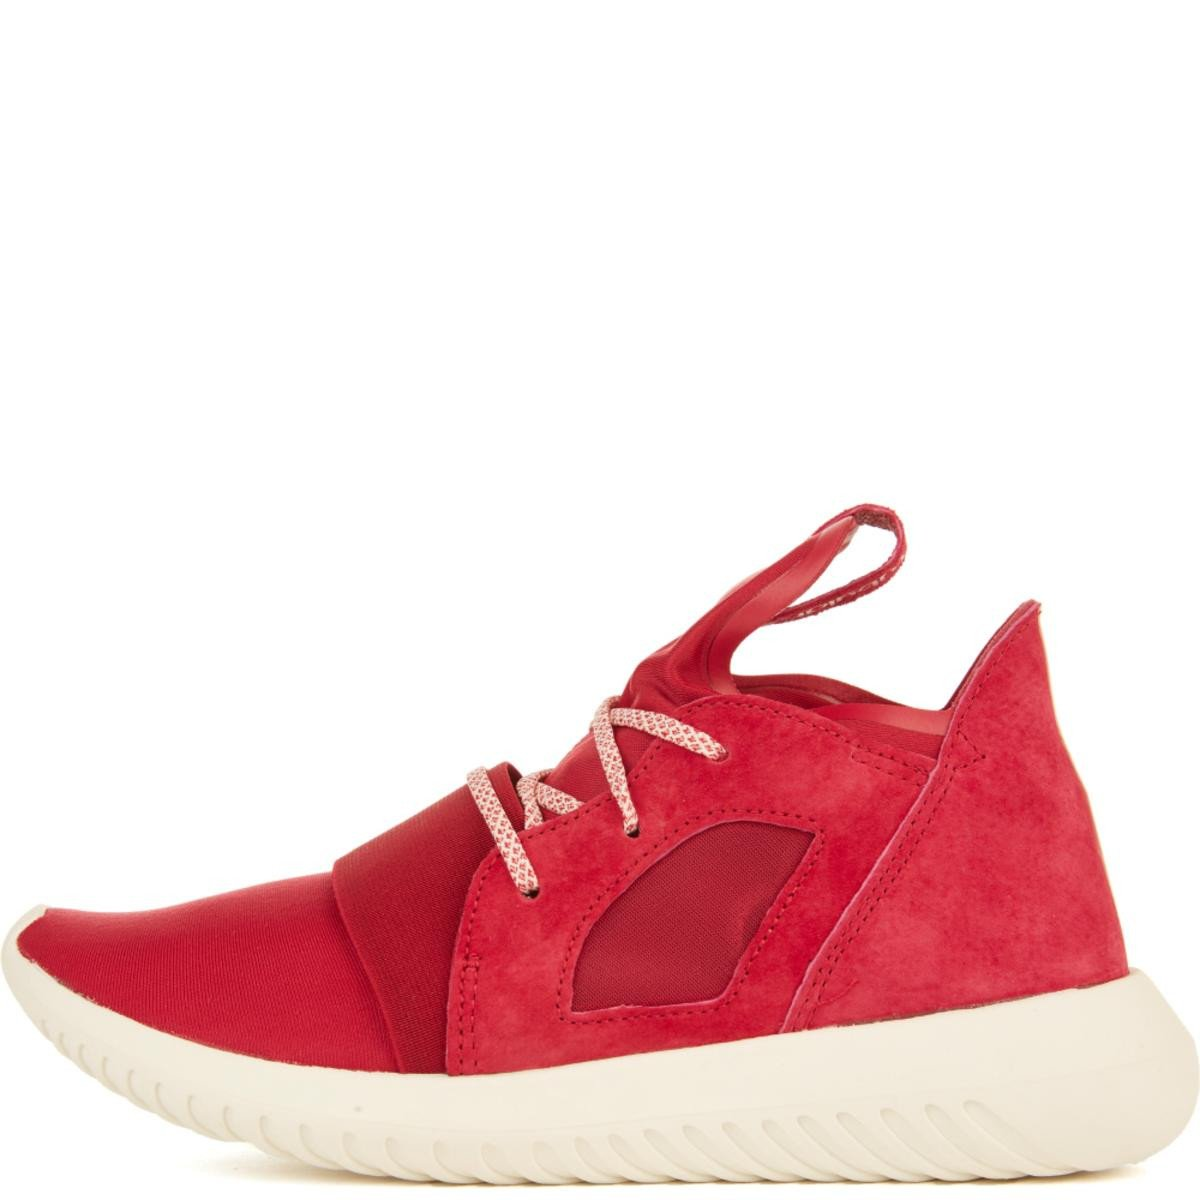 adidas for Women: Tubular Defiant Unity Pink/Unity Pink/Off White Sneakers